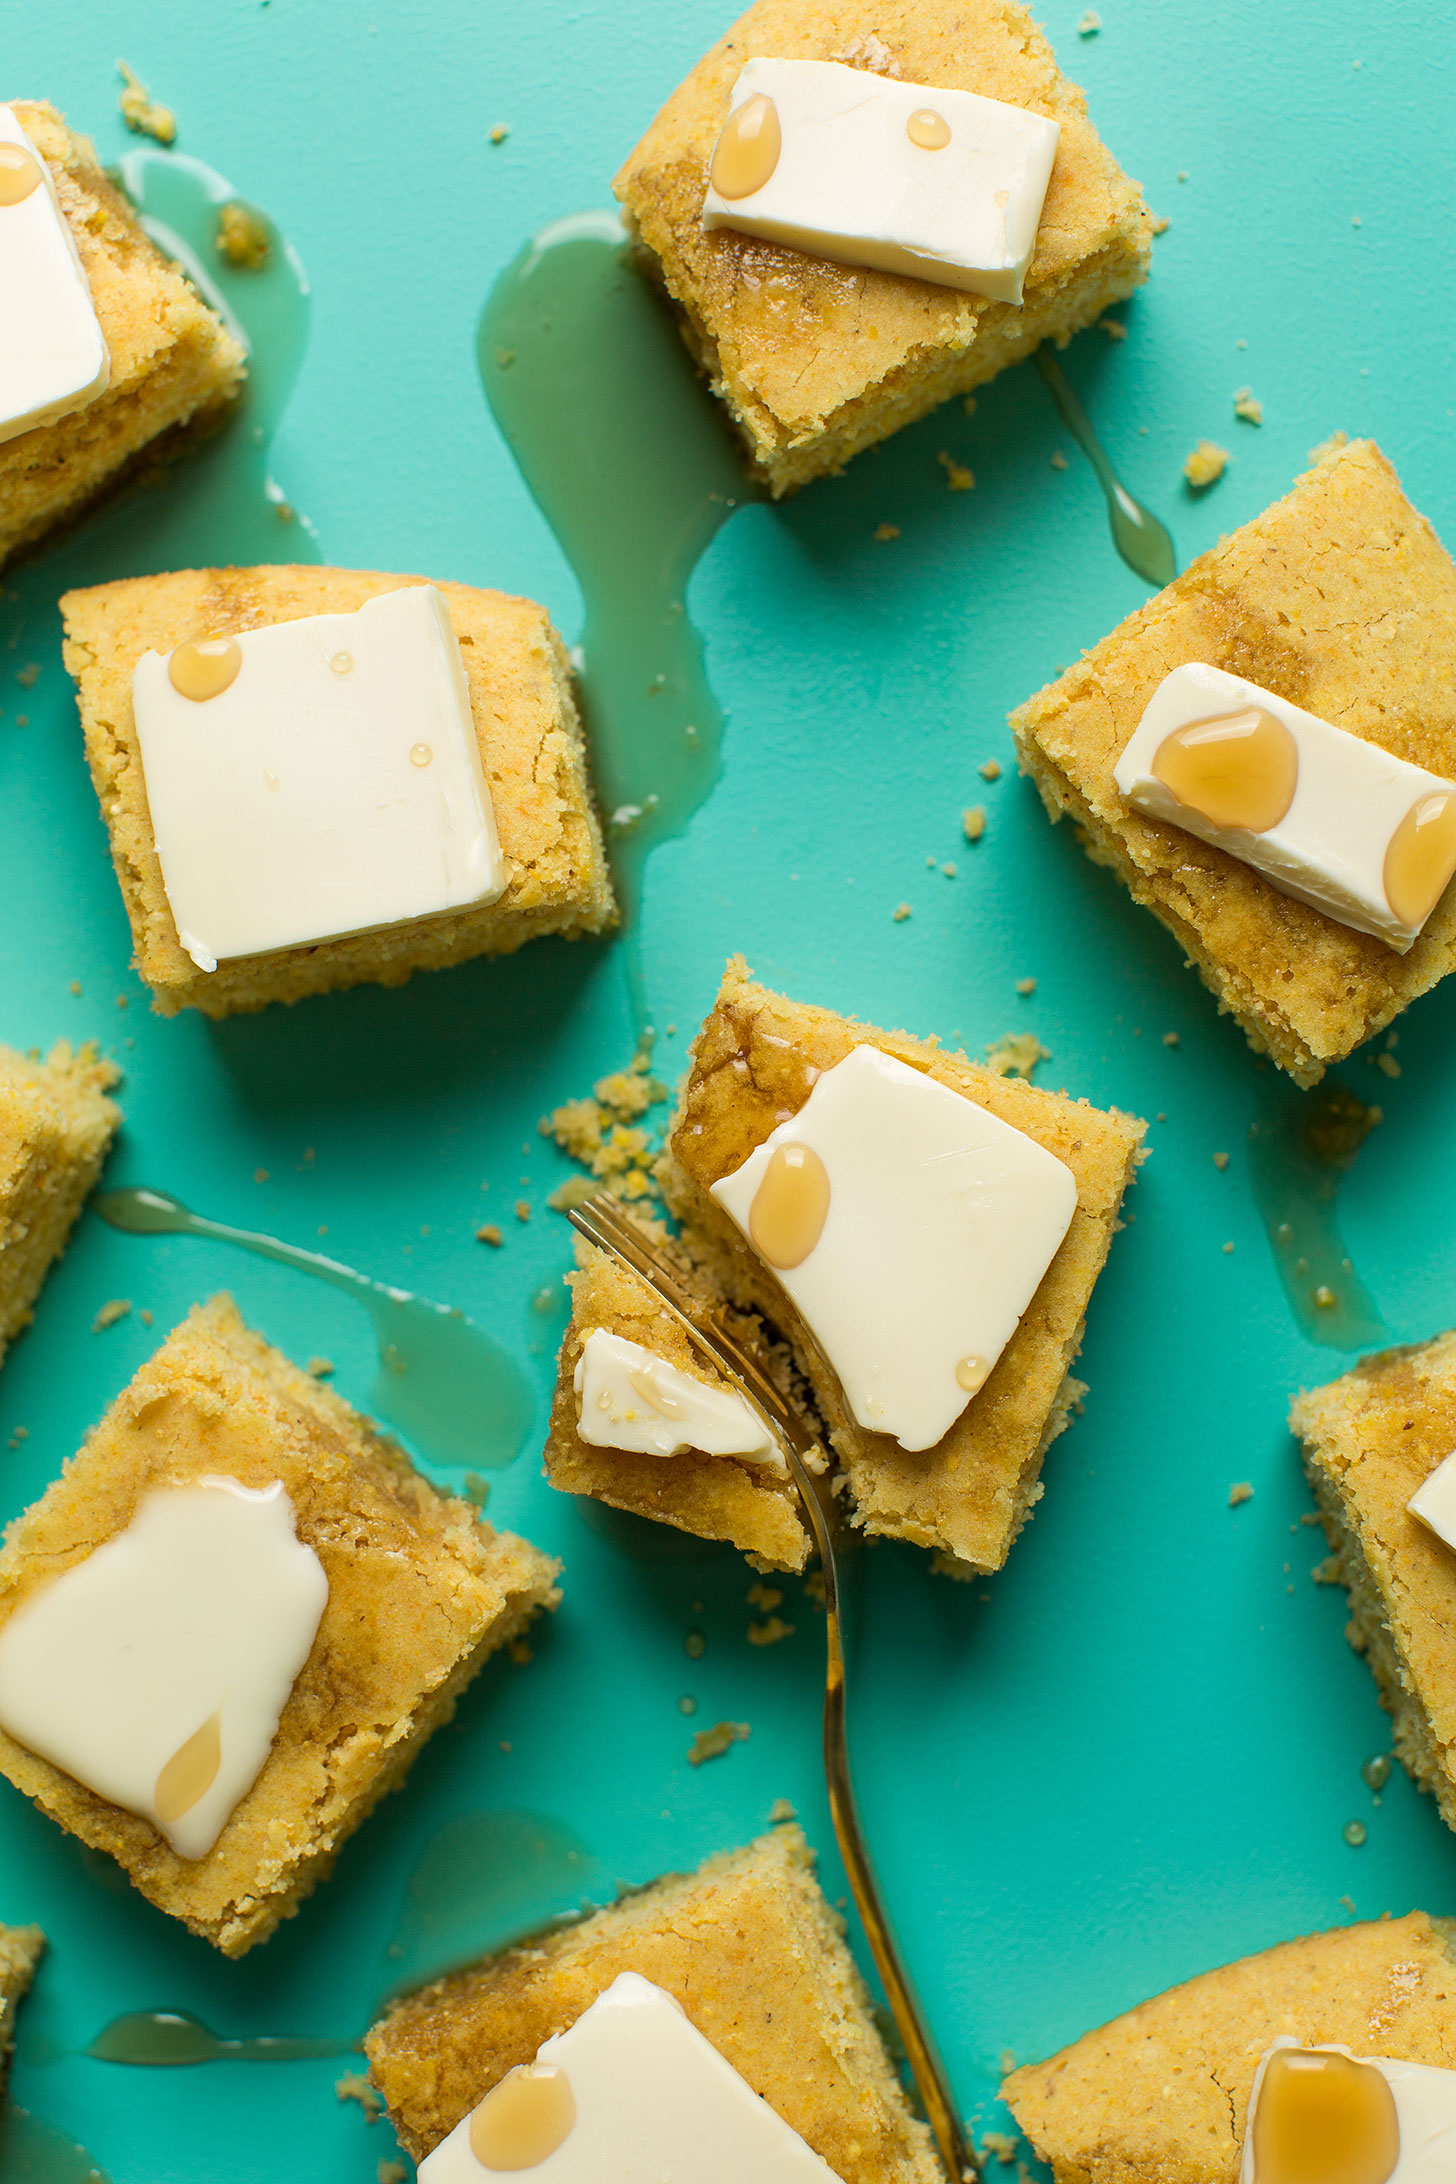 Cutting into a slice of the best vegan gluten-free cornbread